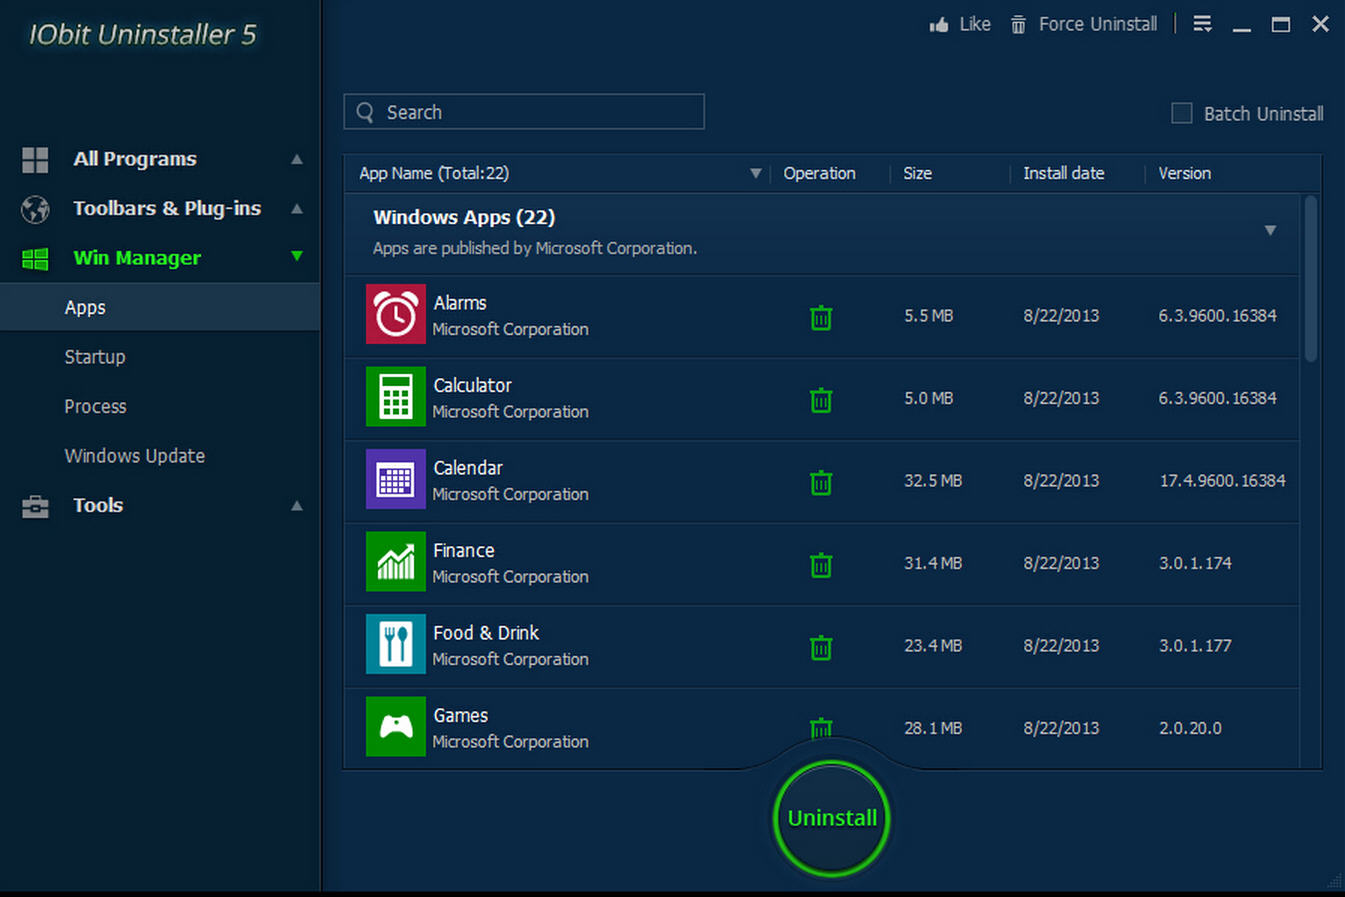 IObit Uninstaller 5 adds even more PC cleanup power  Iobit